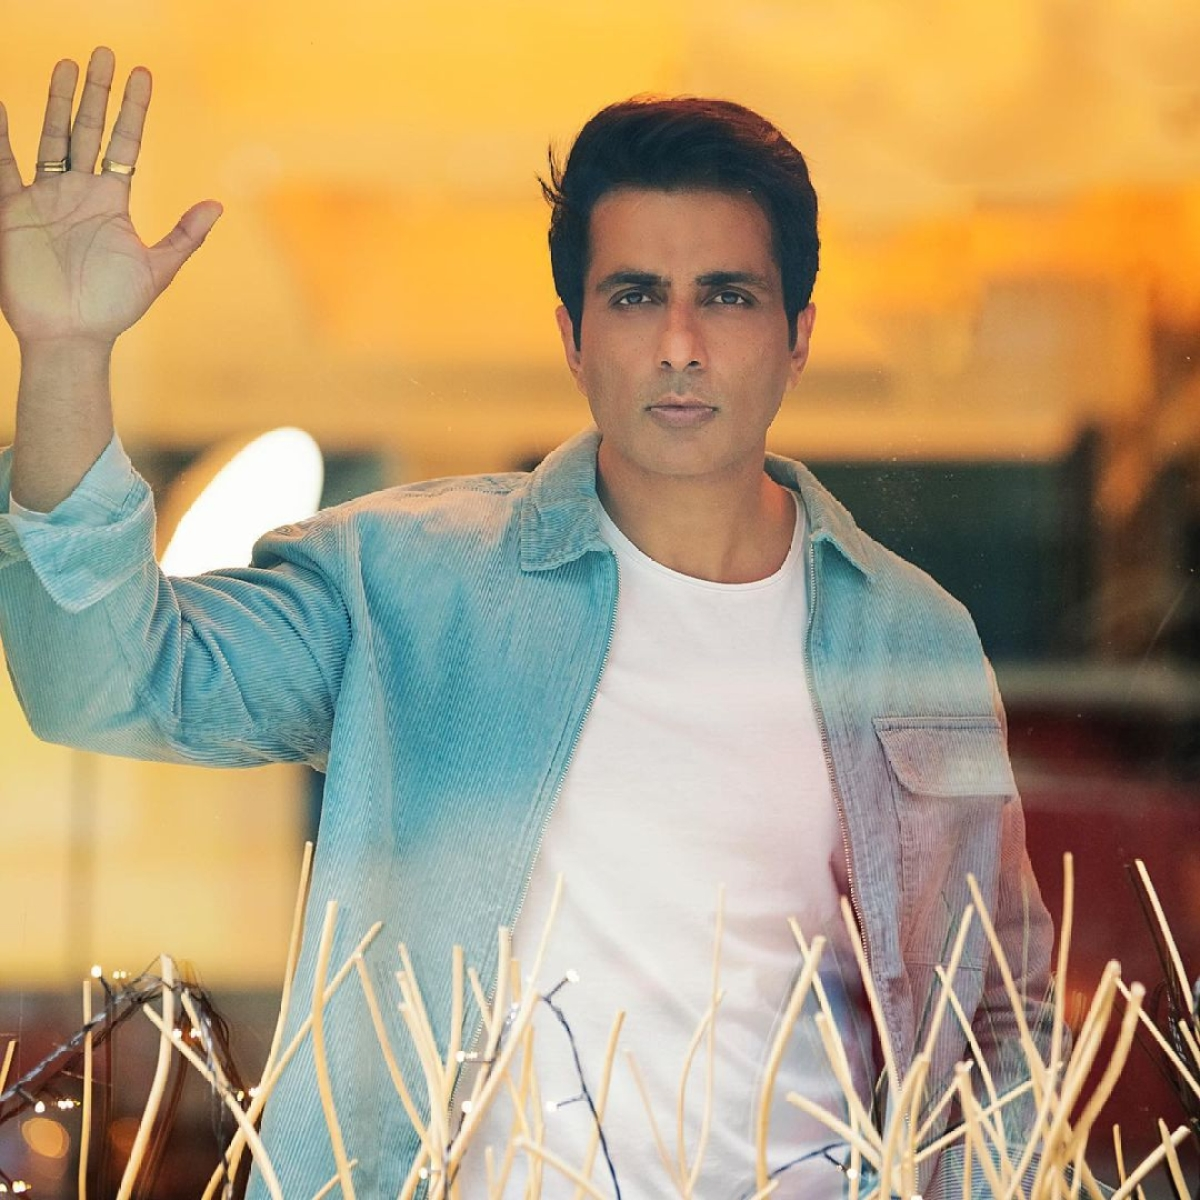 'Time to do something for the country': Sonu Sood's message for those who 'show patriotism on Independence Day'